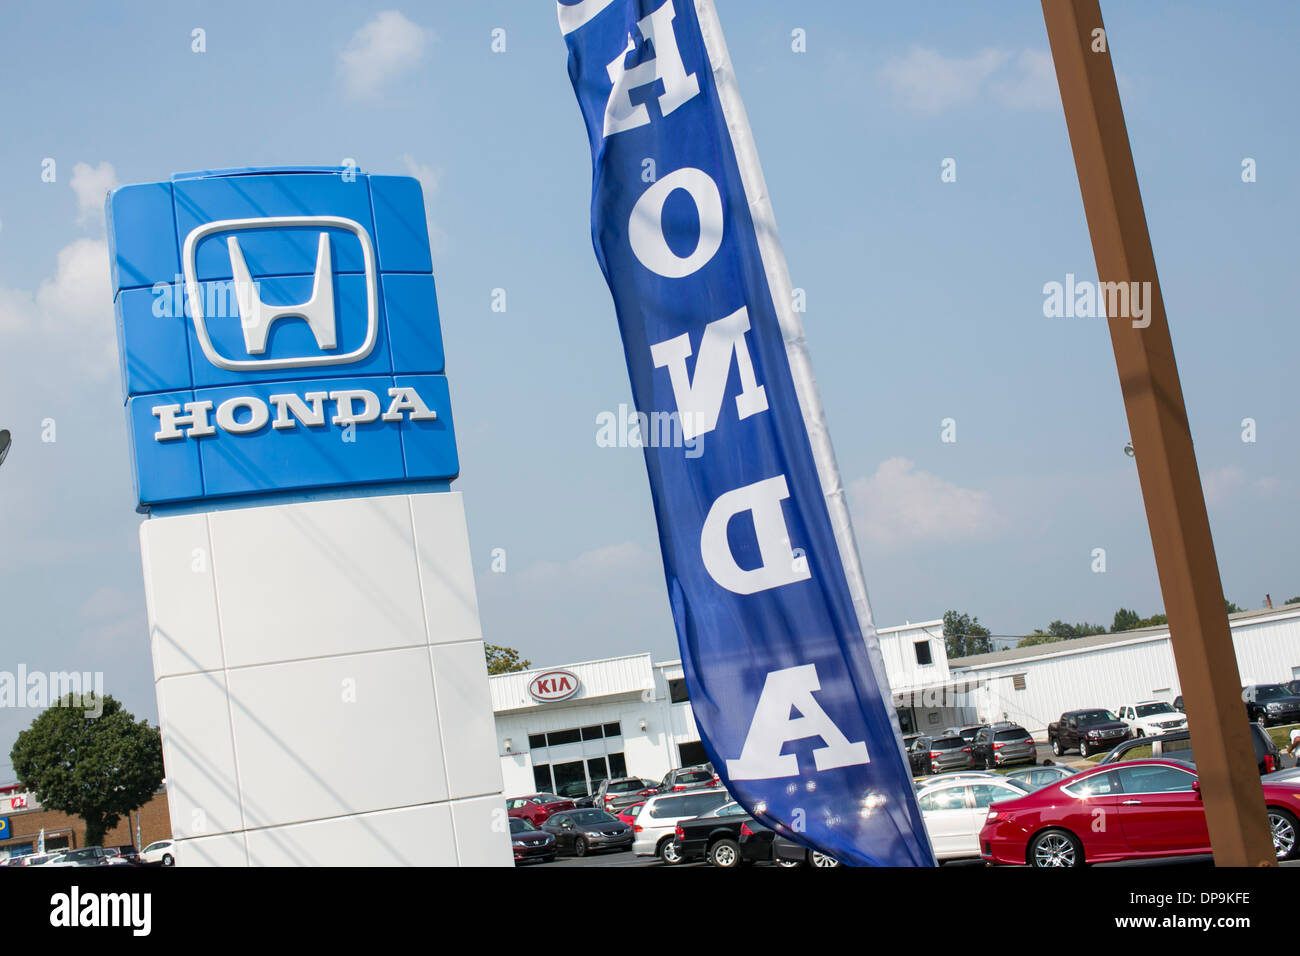 Charming A Honda Dealer Lot In Suburban Maryland.   Stock Image